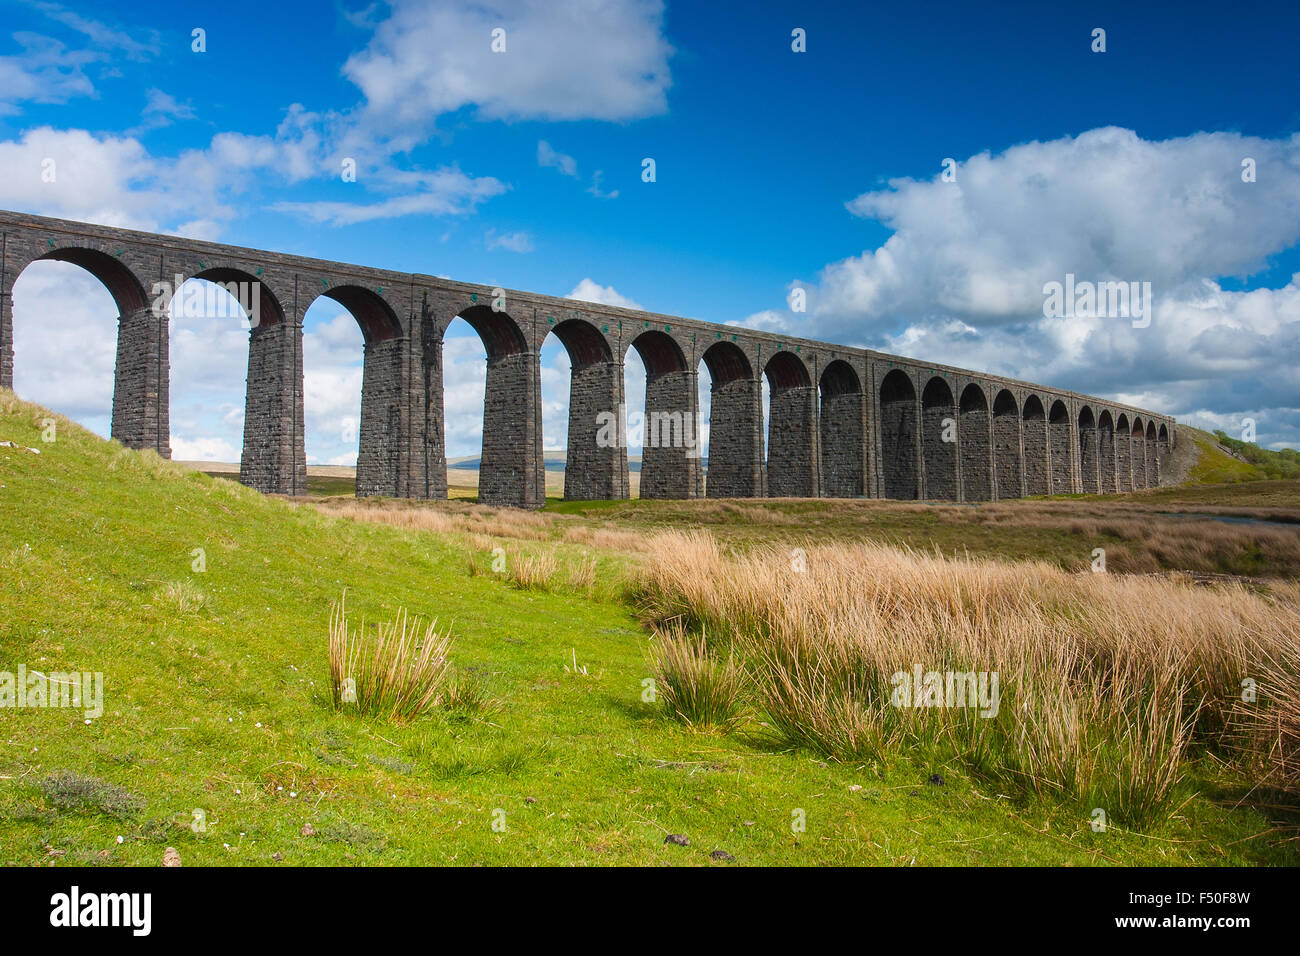 Famous Ribblehead Viaduct in Yorkshire Dales National Park,Great Britain - Stock Image